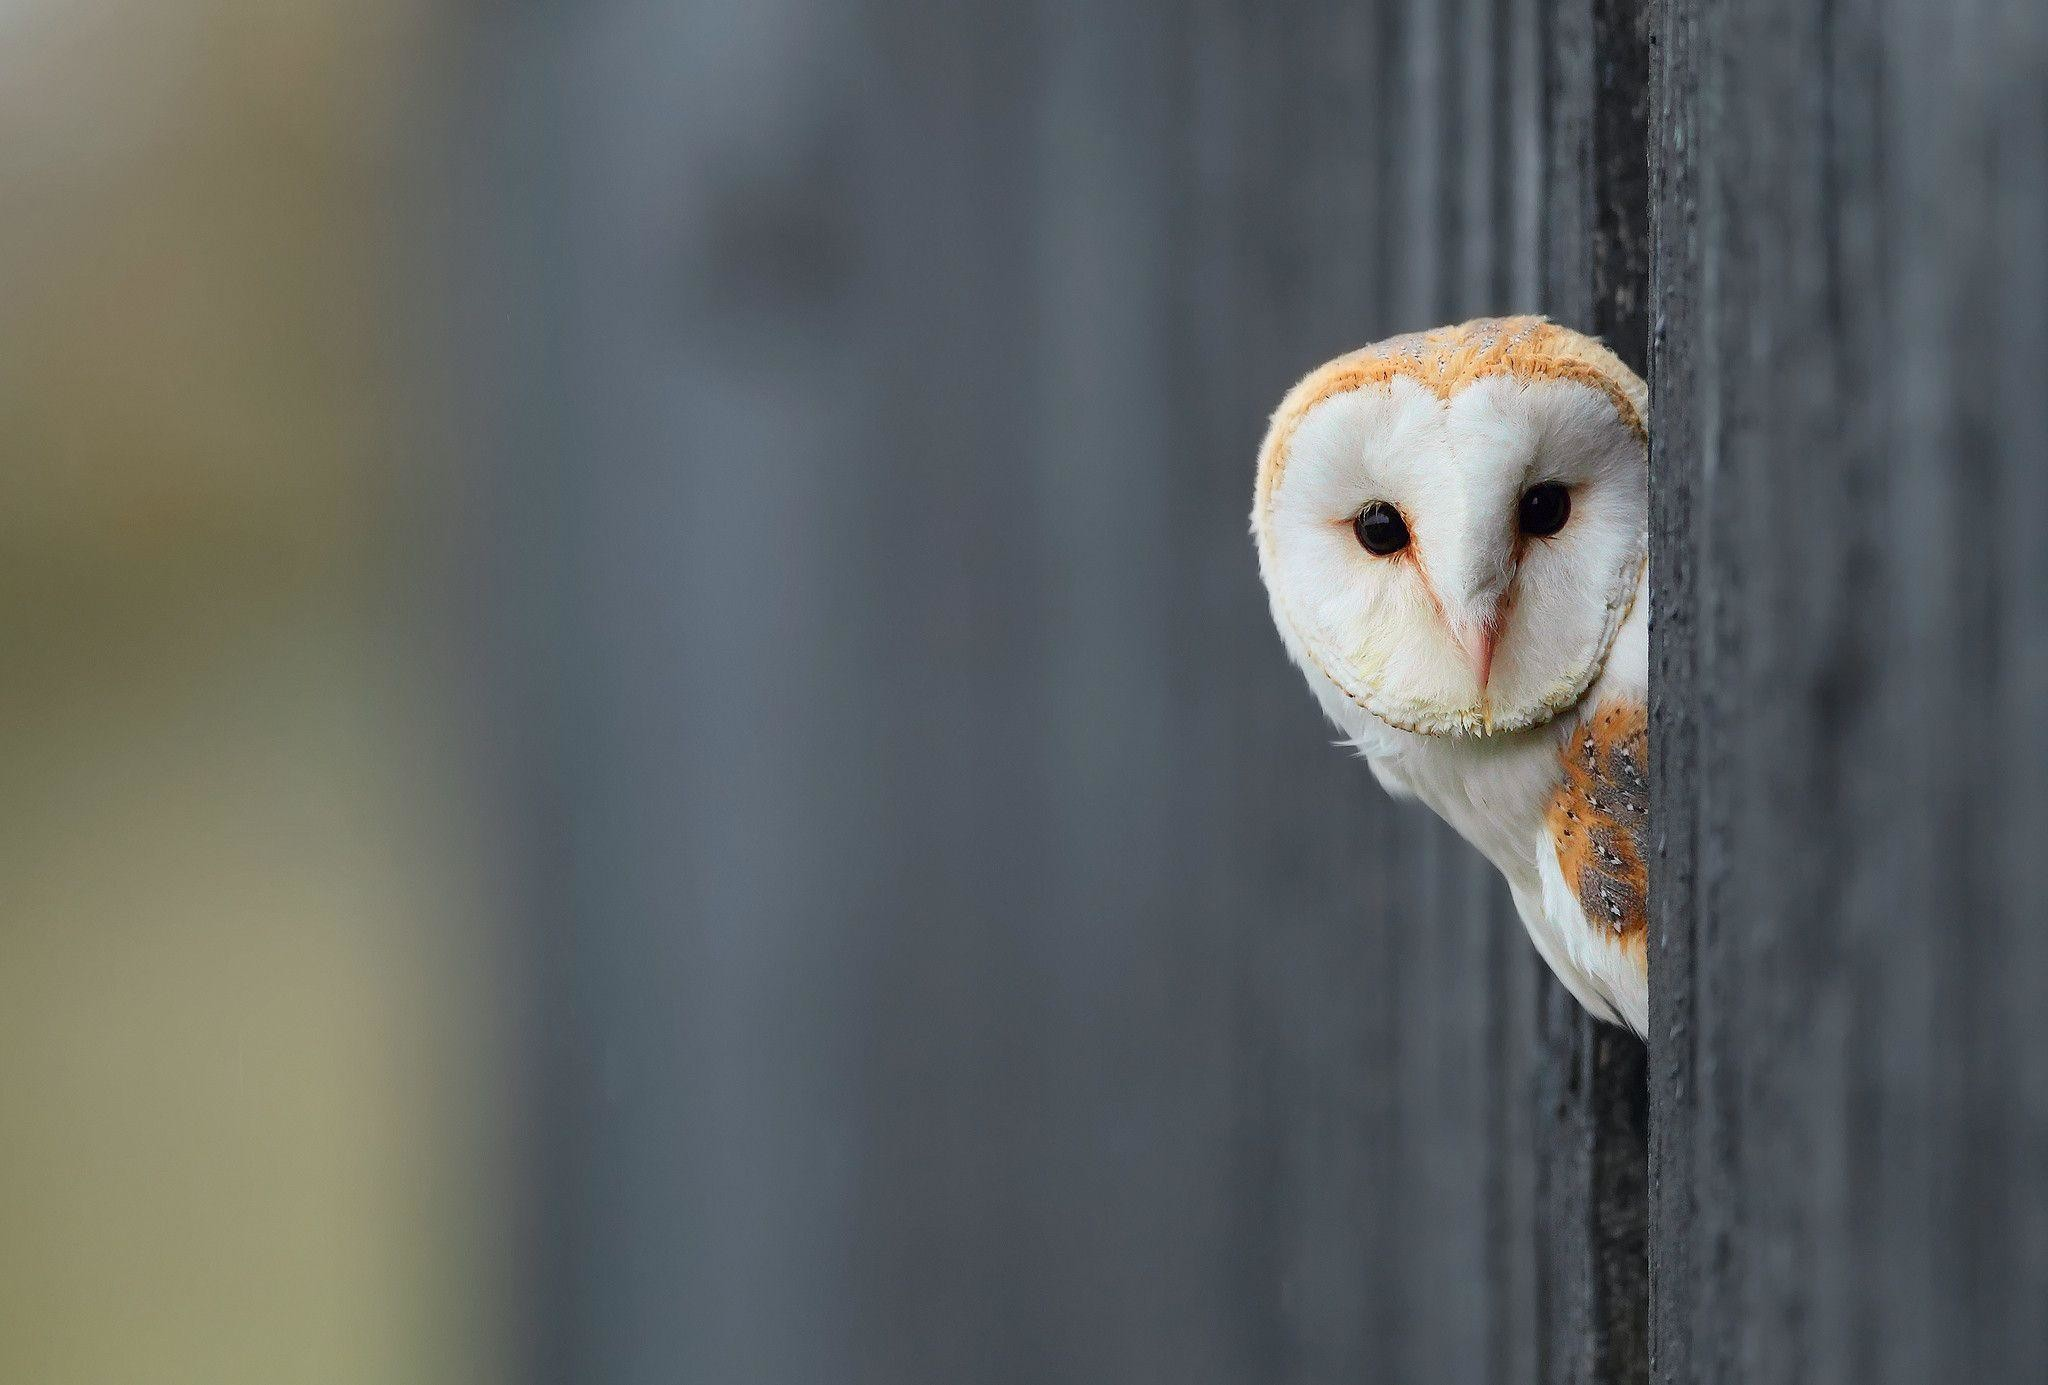 White Owl Wallpaper   HD Wallpapers, backgrounds high resolution .